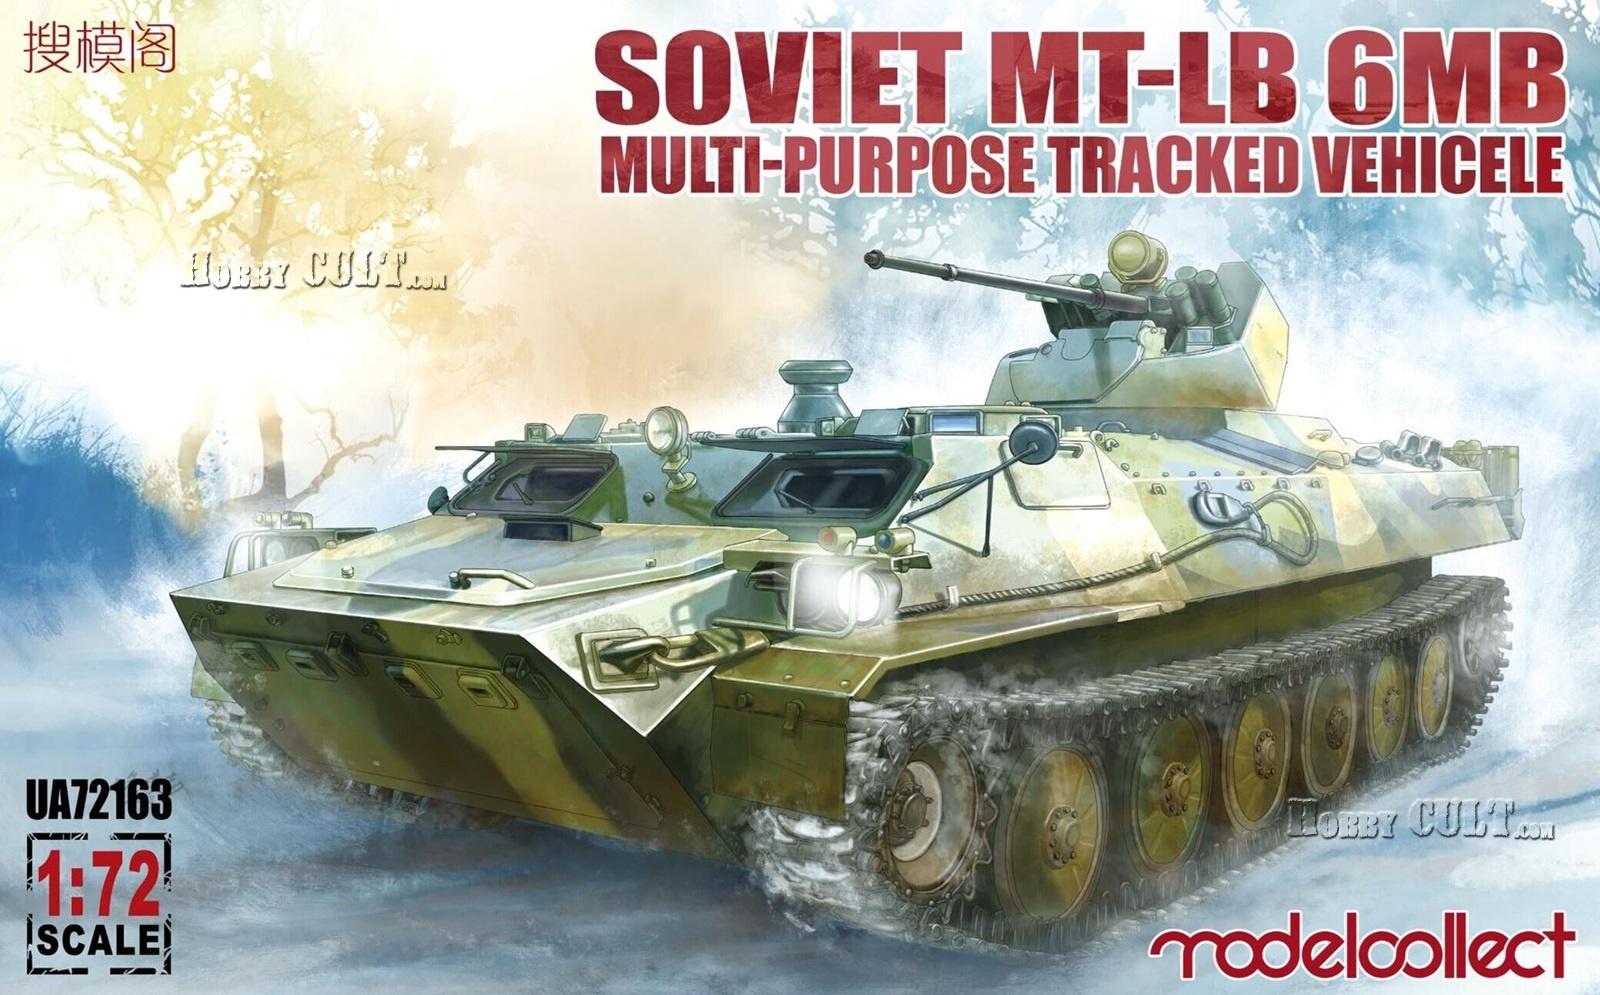 1:72 Soviet MT-LB 6MB Multi-Purpose Tracked Vehicle (Pre-Order)